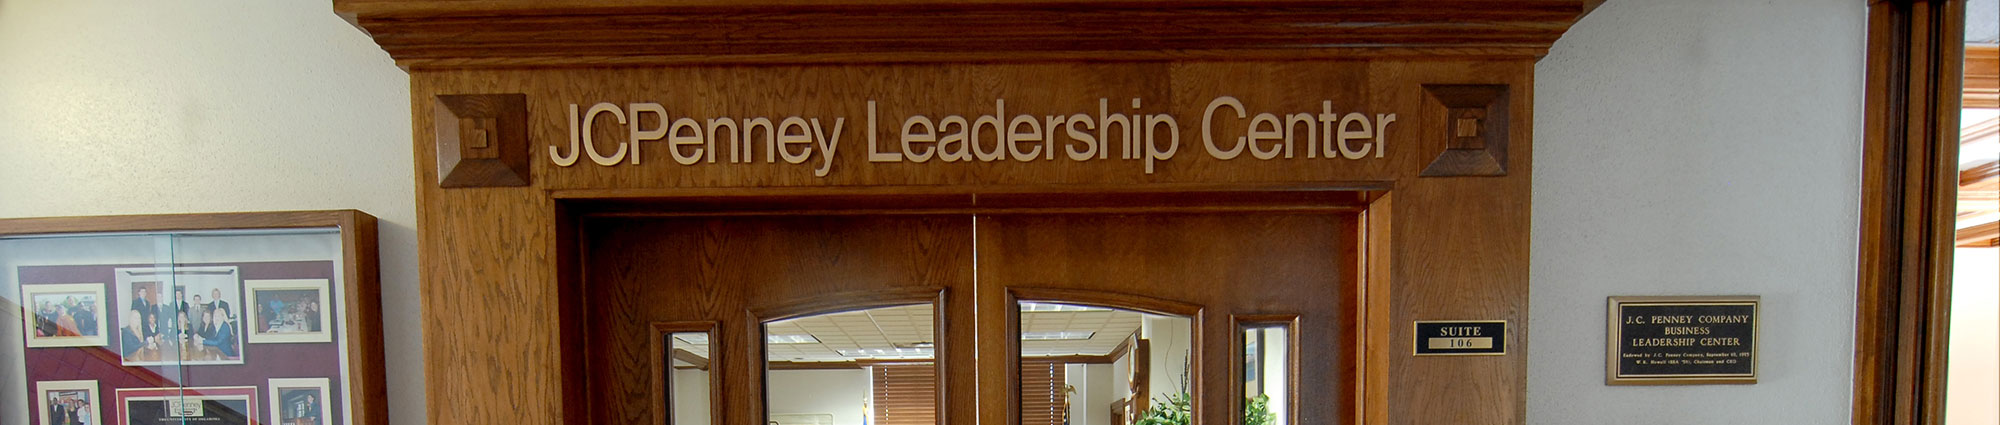 JCPenney Leadership Center entrance